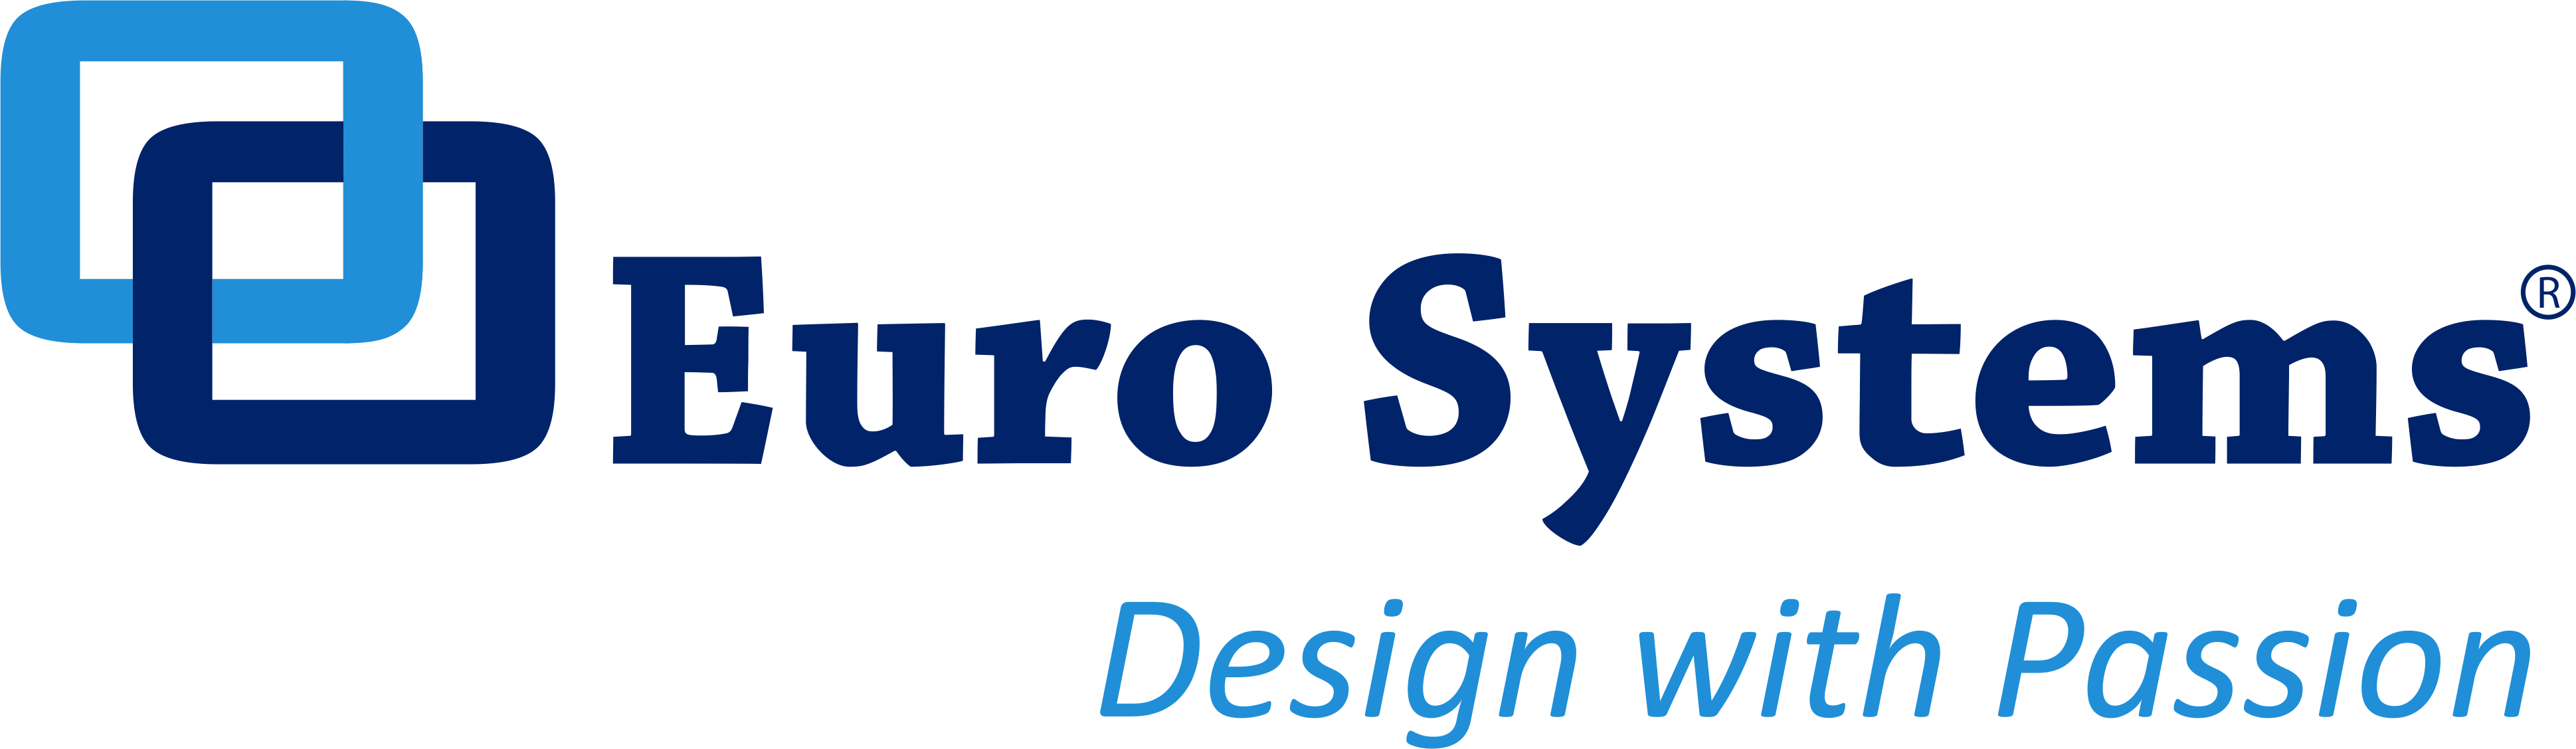 EuroSystemsLogo_PNG.png